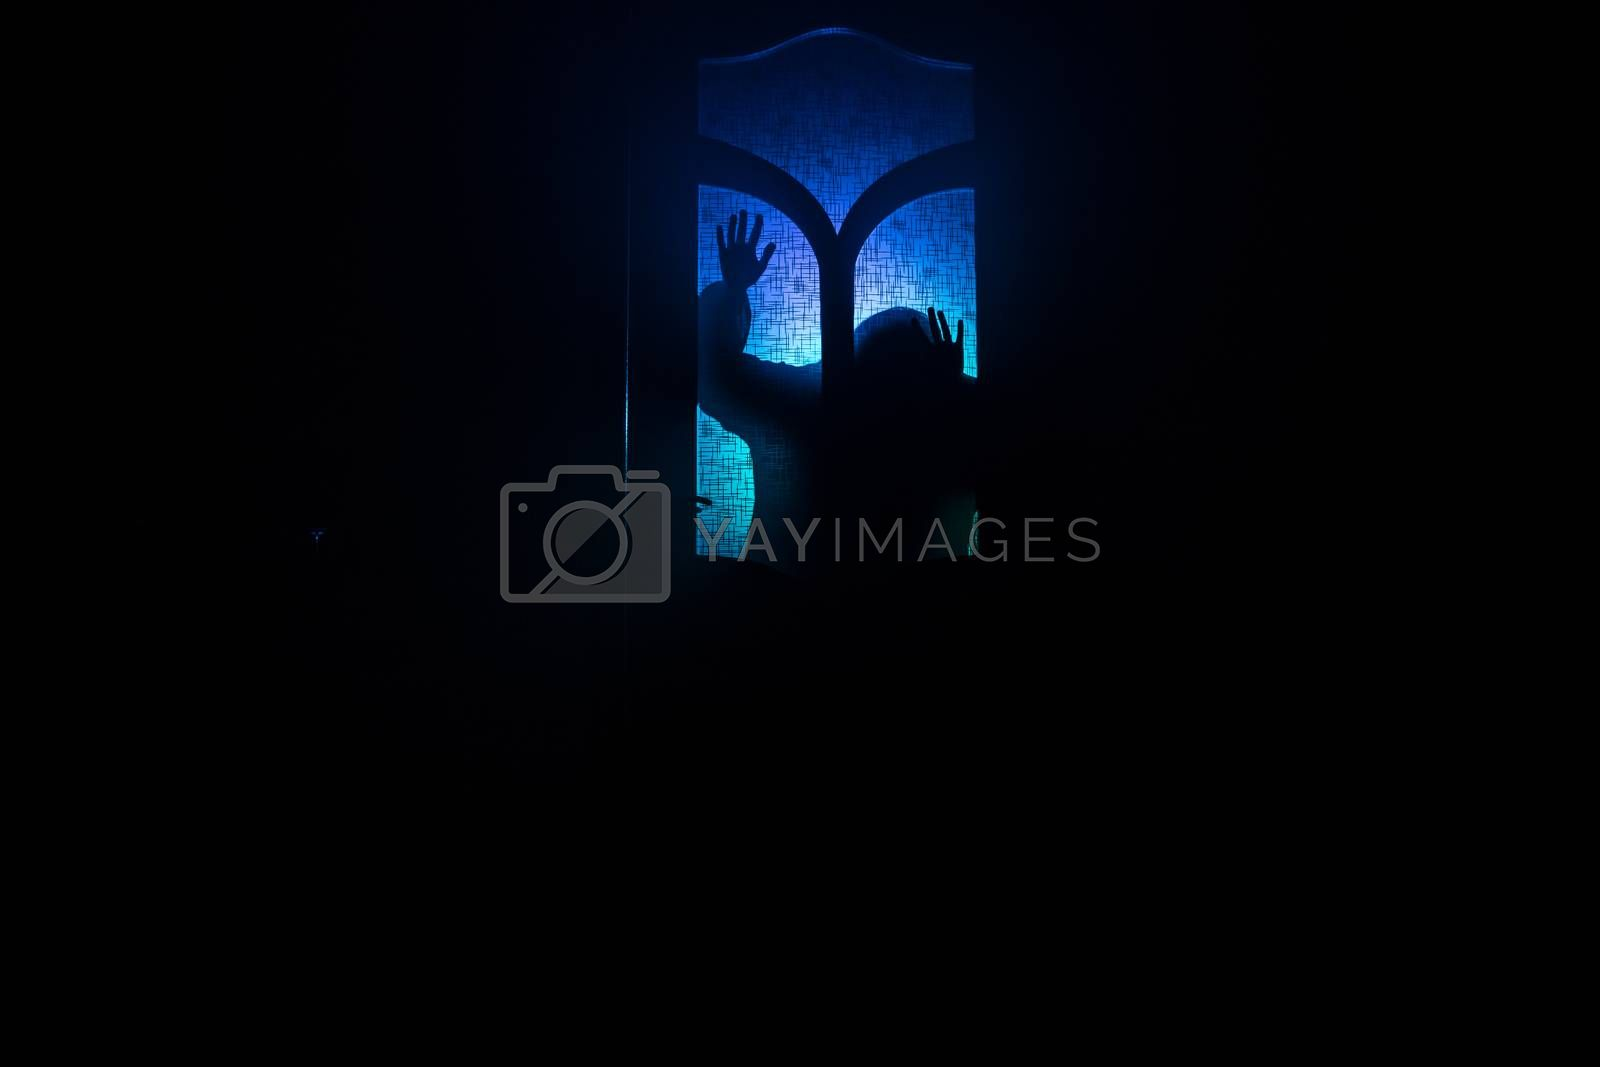 Silhouette of an unknown shadow figure on a door through a closed glass door. Spooky silhouette girl at night with smoke in background